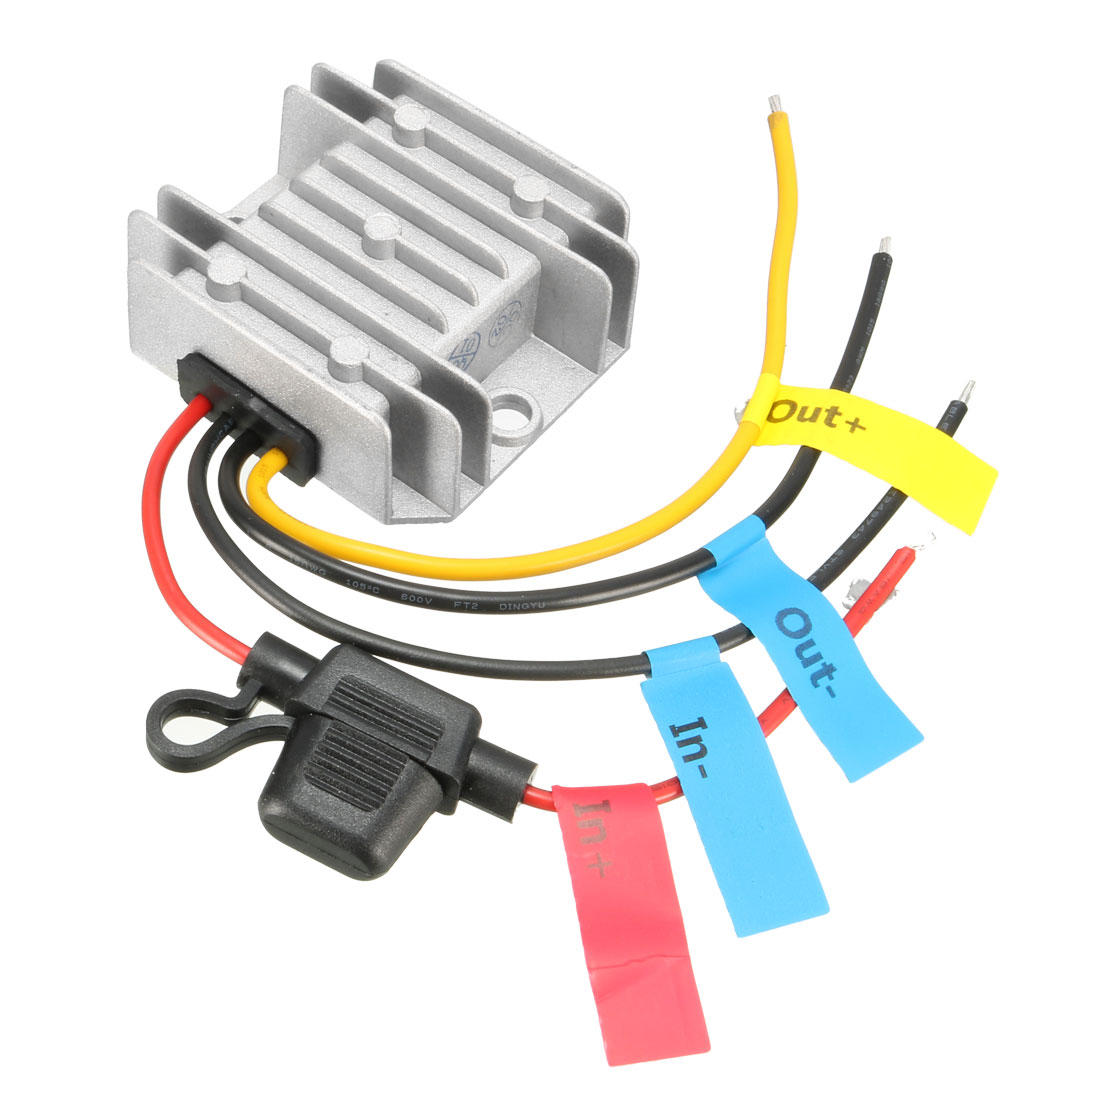 uxcell Power Converter Regulator DC 12V/24V(9V~35V) Step-Down to DC 6V 10A 60W Waterproof Voltage Convert Transformer